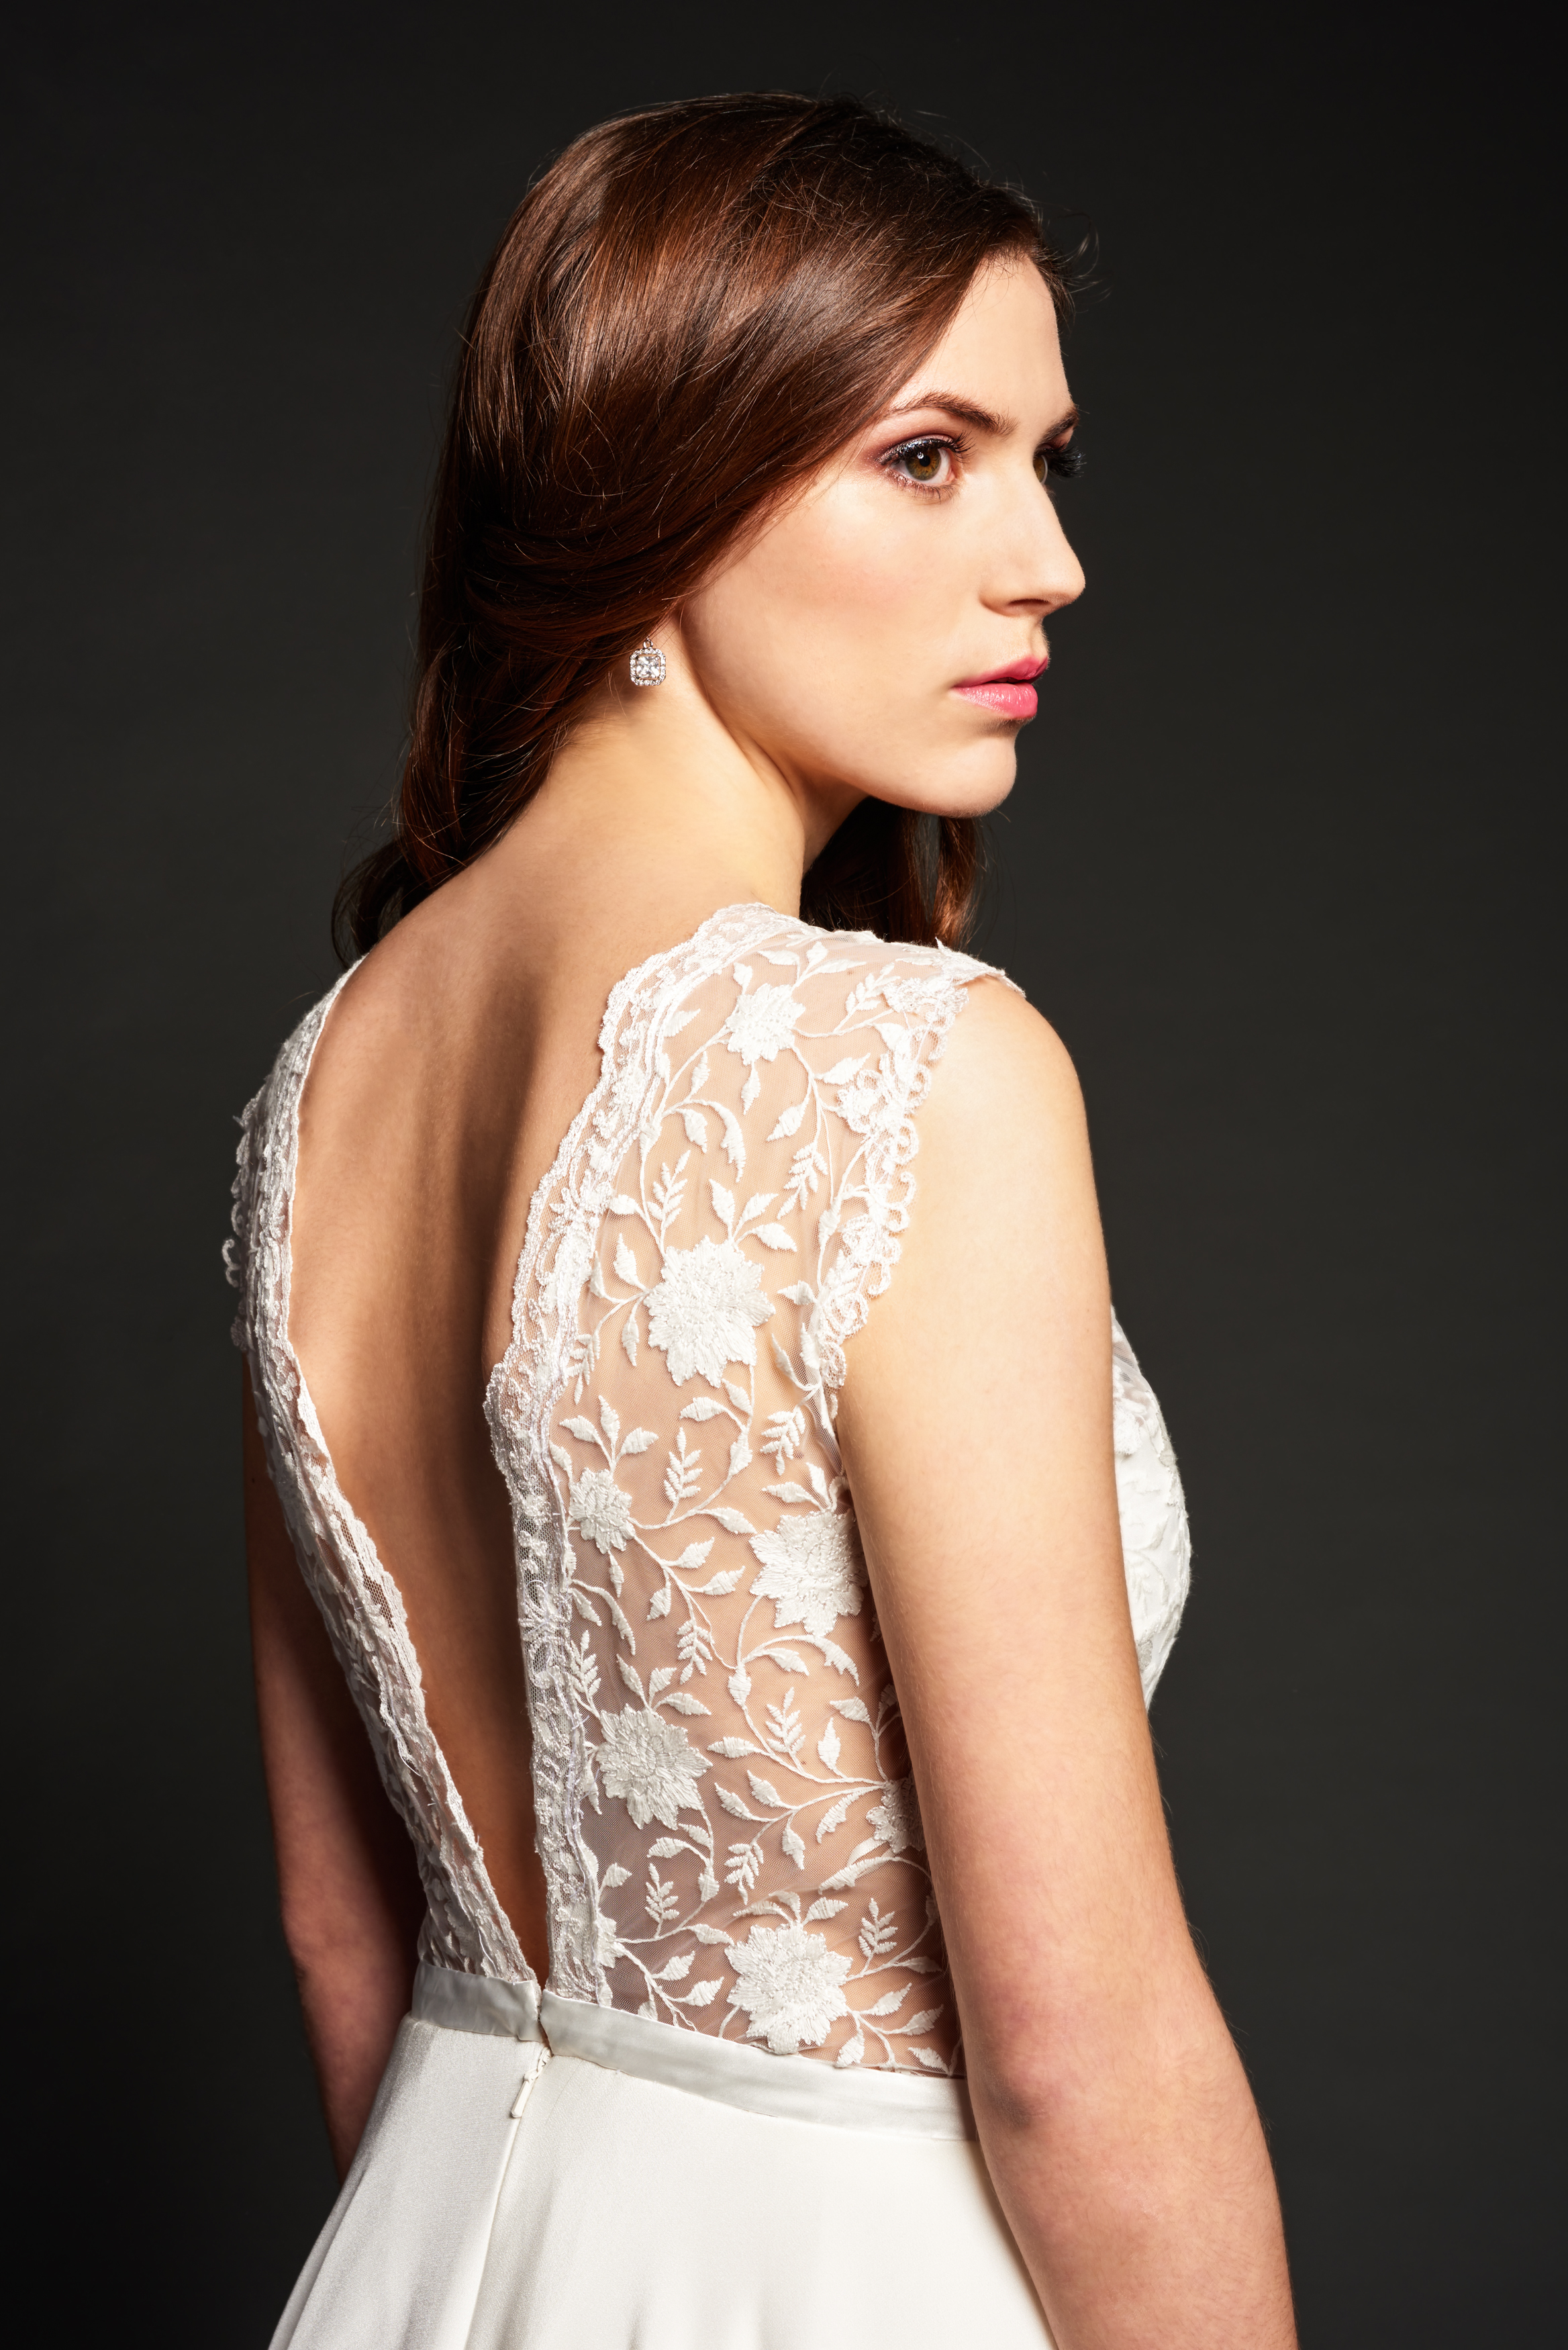 160213_GEMMA LEAKEY BRIDAL - DRESS 02-03.jpg